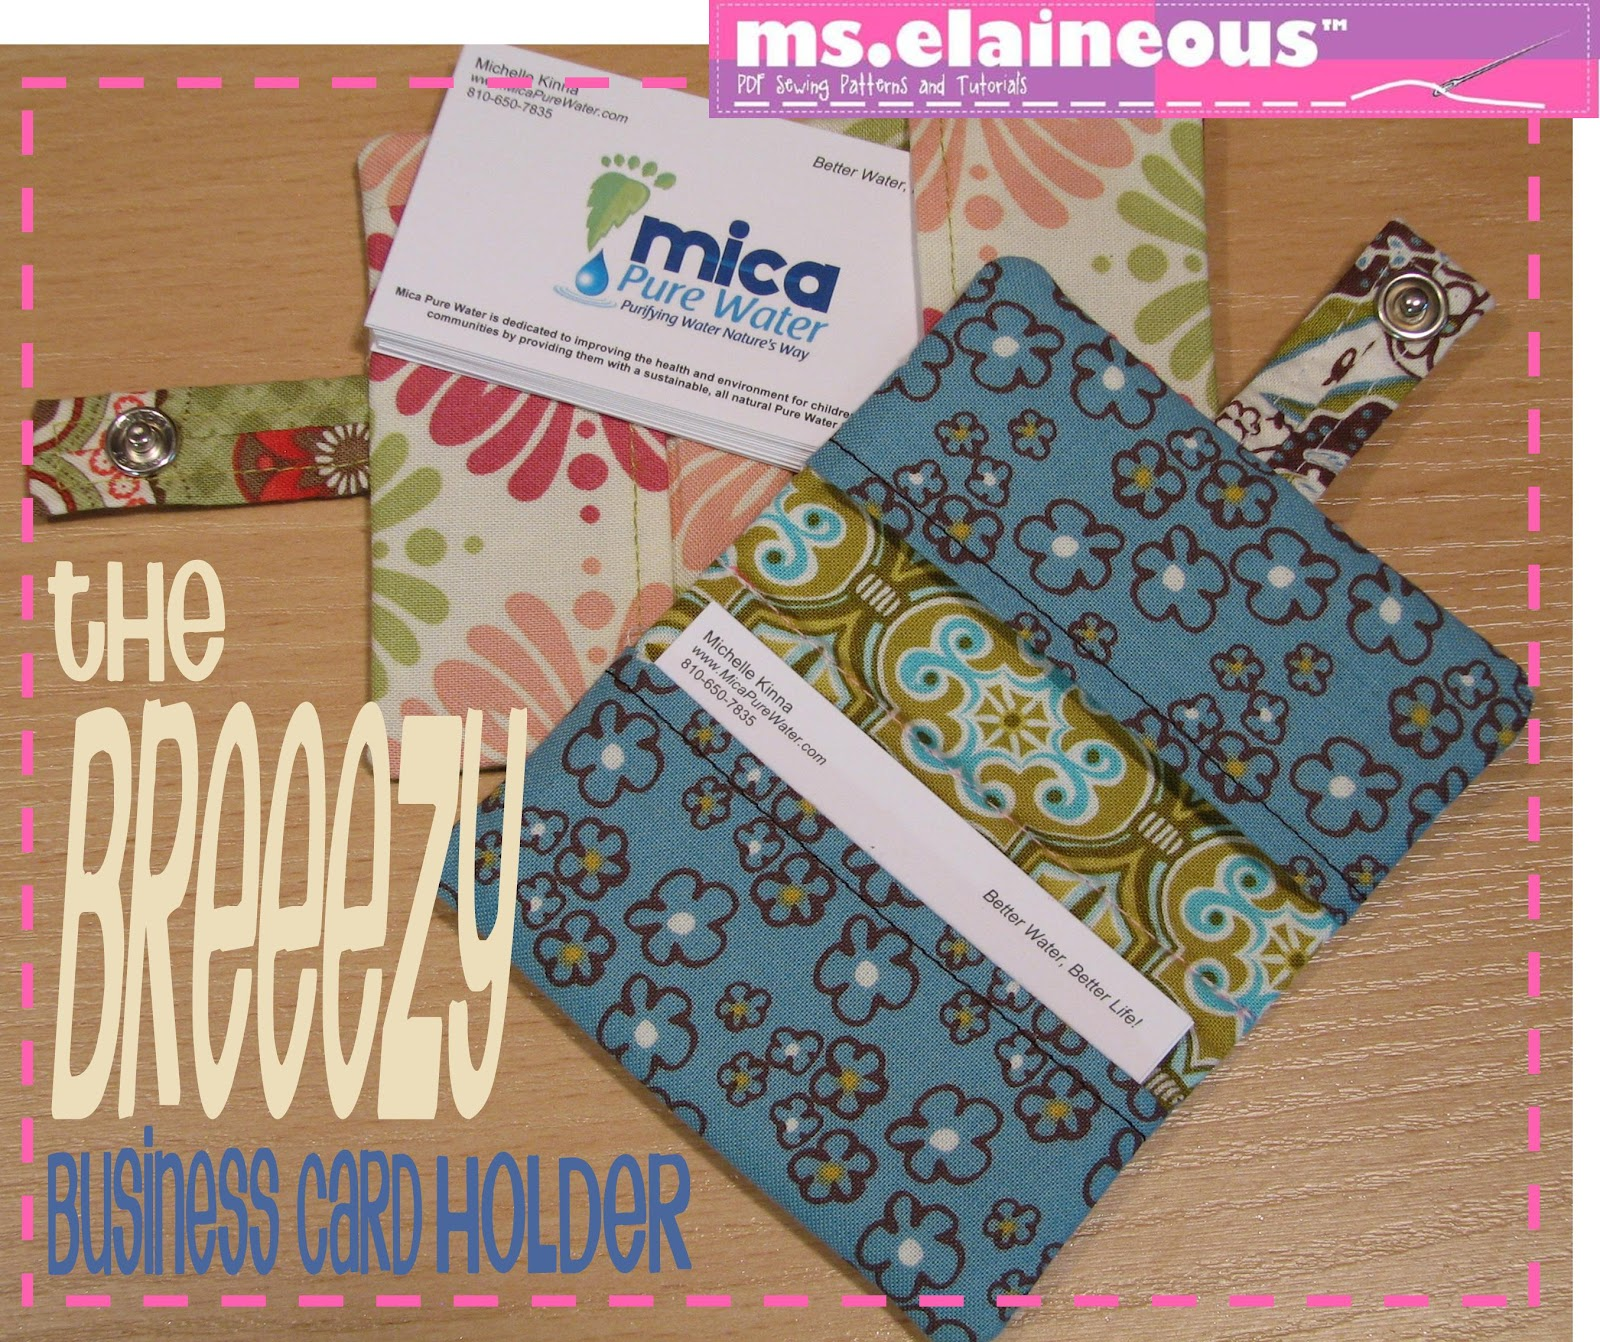 Ms. Elaineous Teaches Sewing: The Breezy Business Card Holder ...